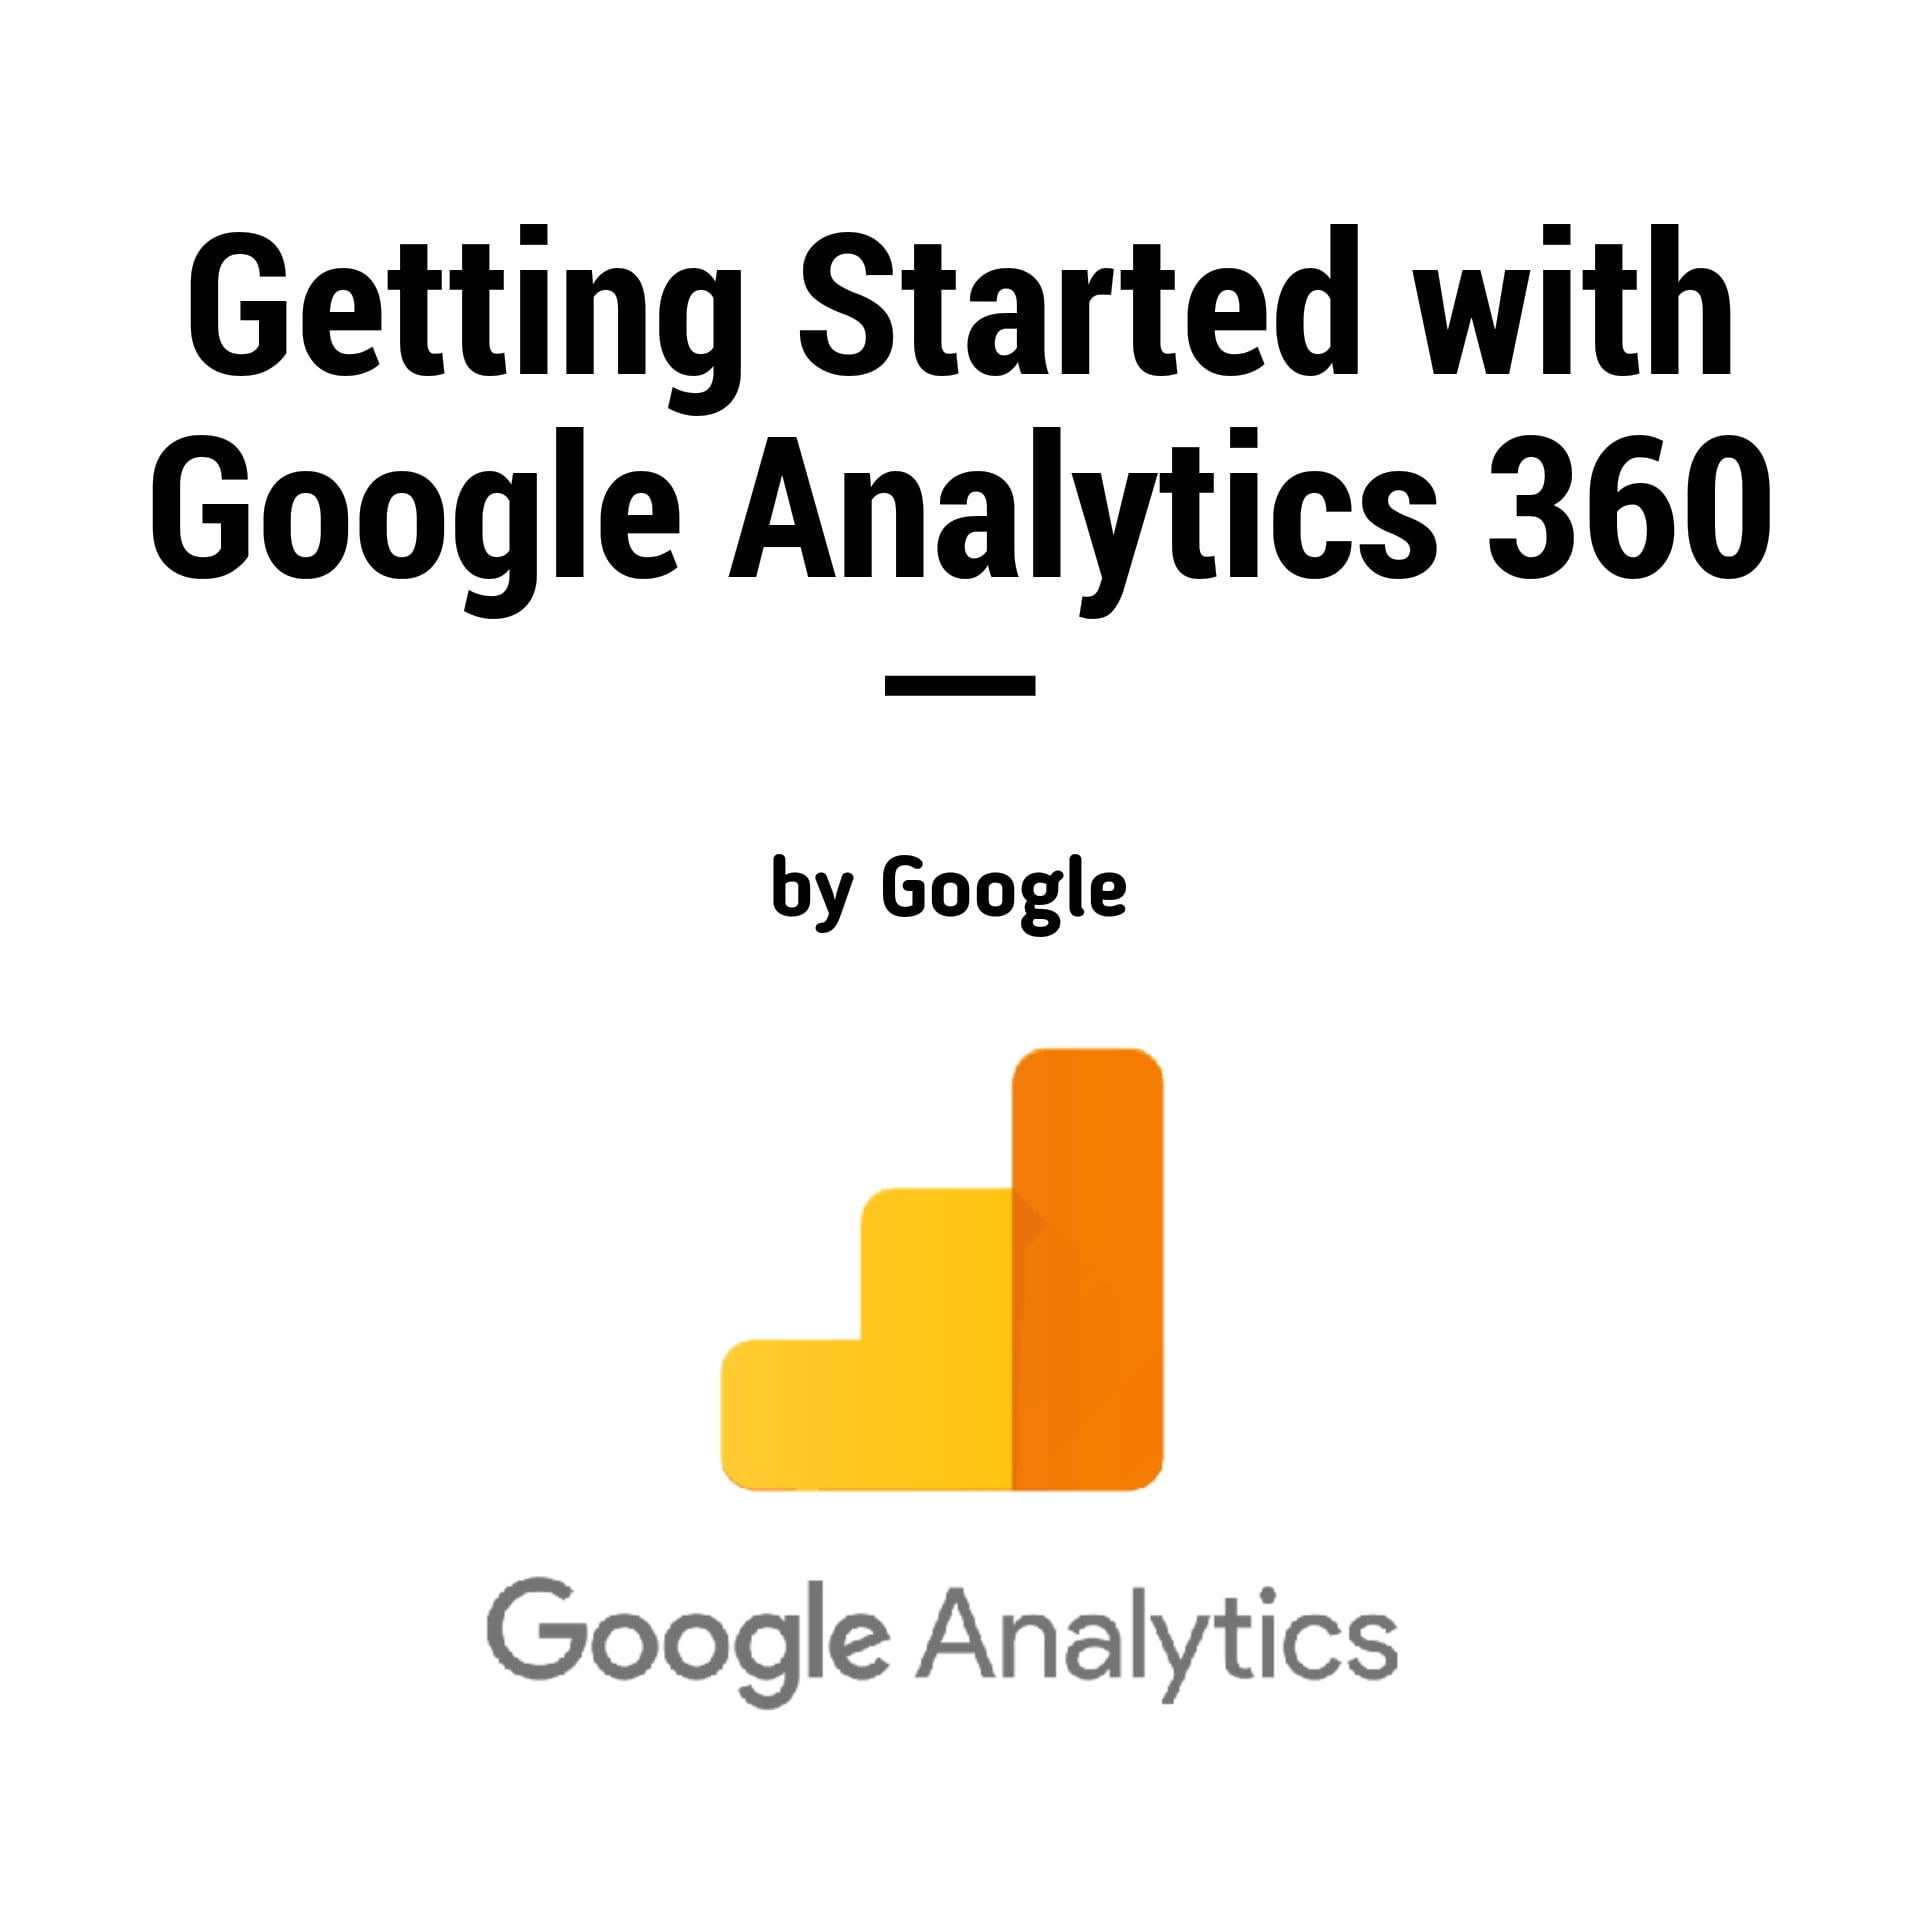 getting started with google analytics 360